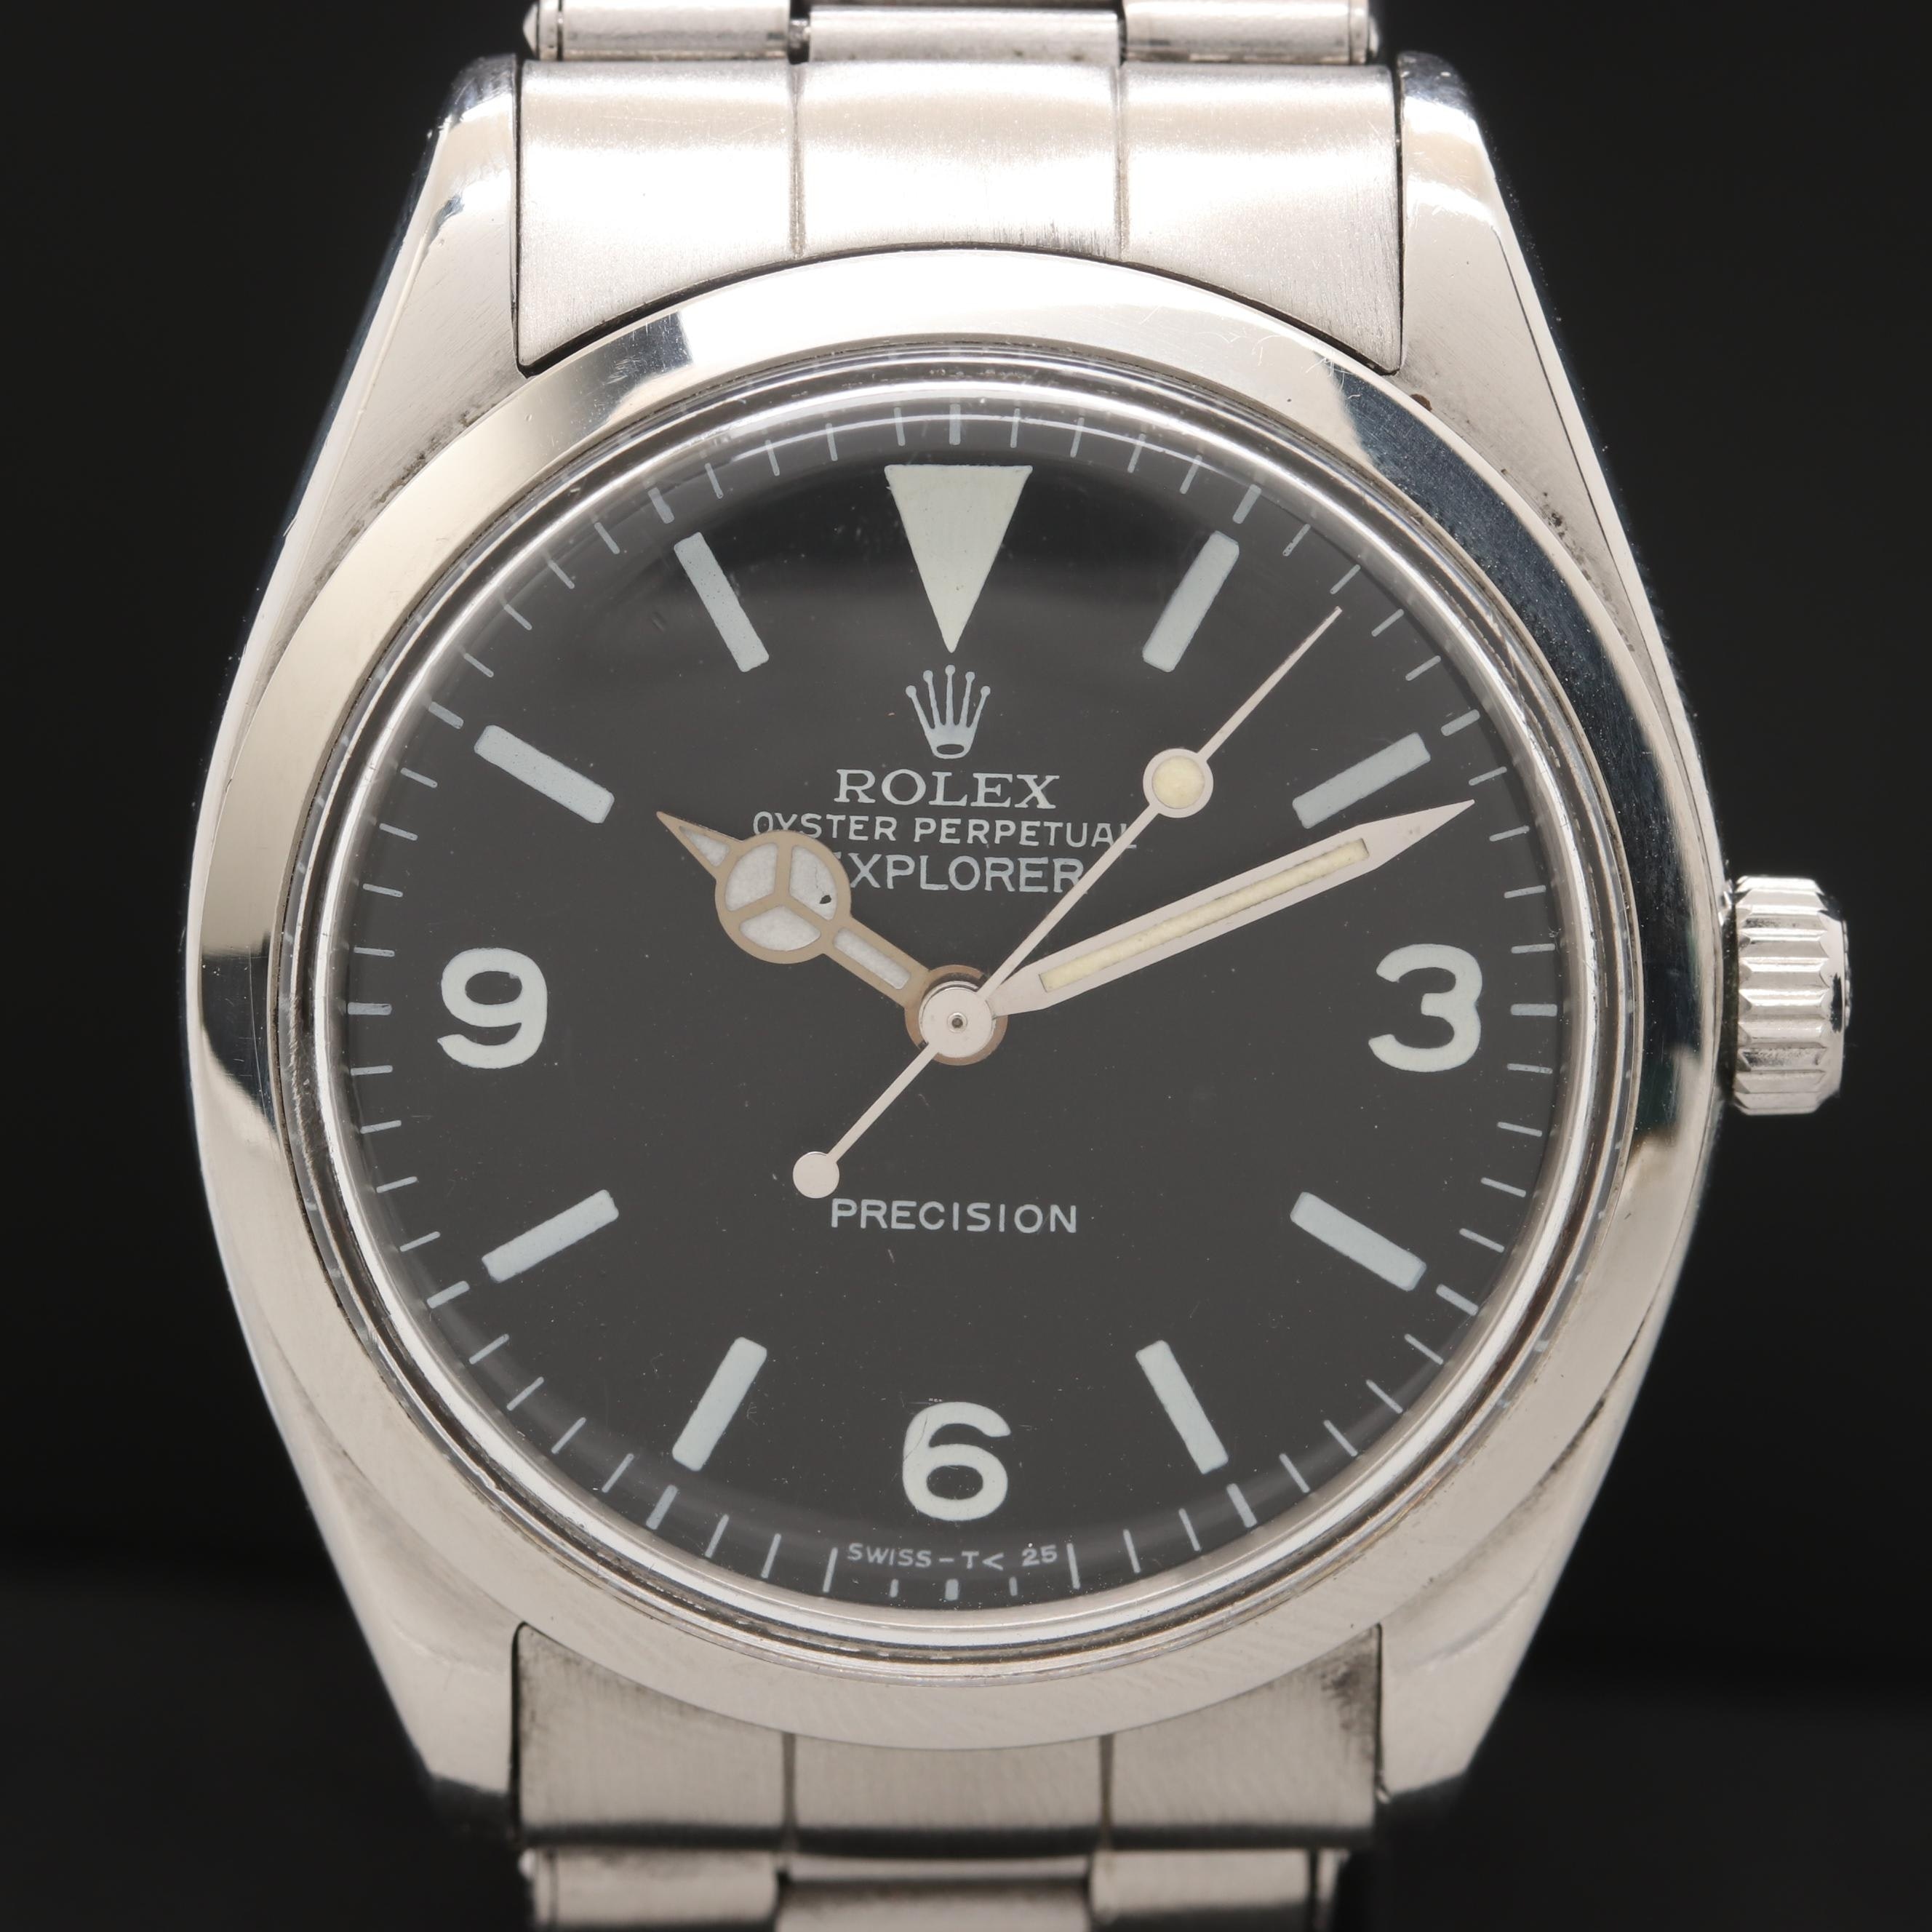 Rolex Air King 5500 with Explorer Dial Wristwatch 1960